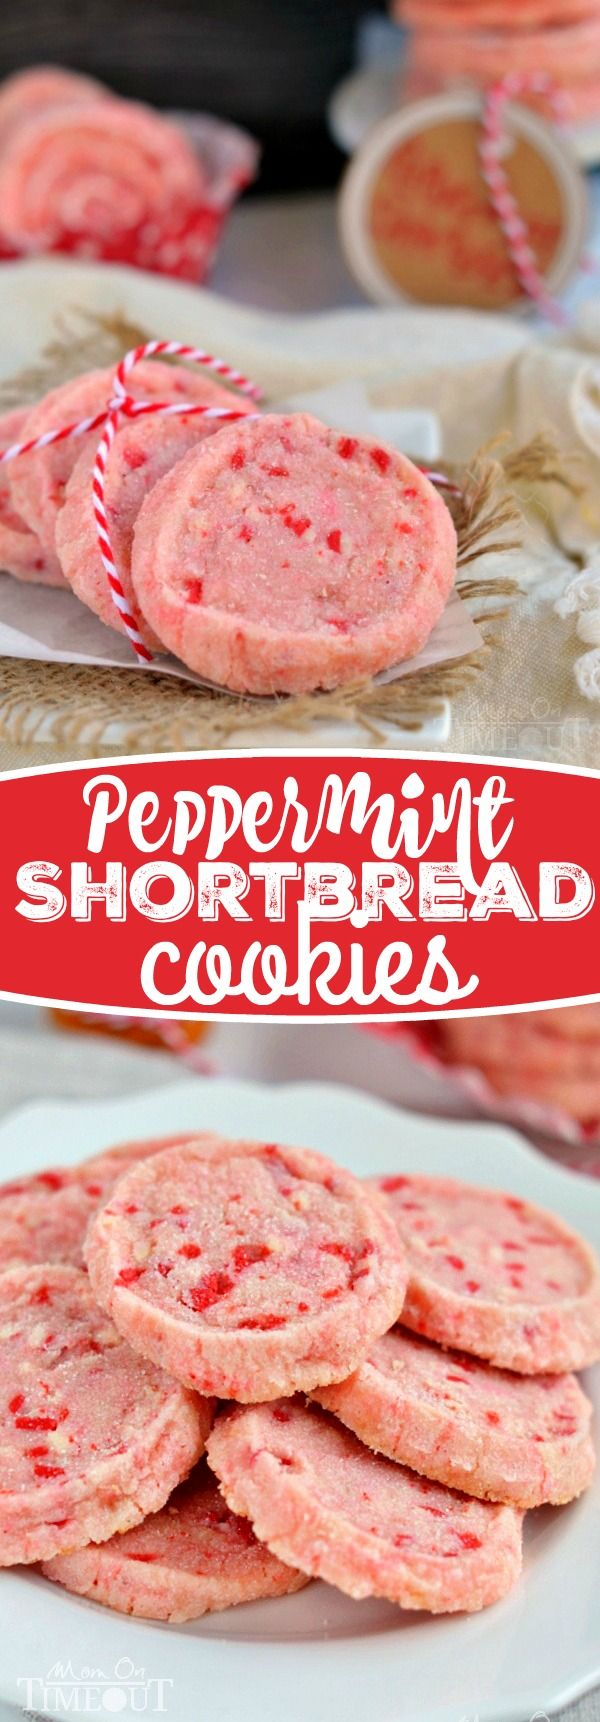 These festive Peppermint Shortbread Cookies are the perfect addition to your holiday cookie trays this year! With only five ingredients, they are quick and easy to make and look so gosh darn pretty!